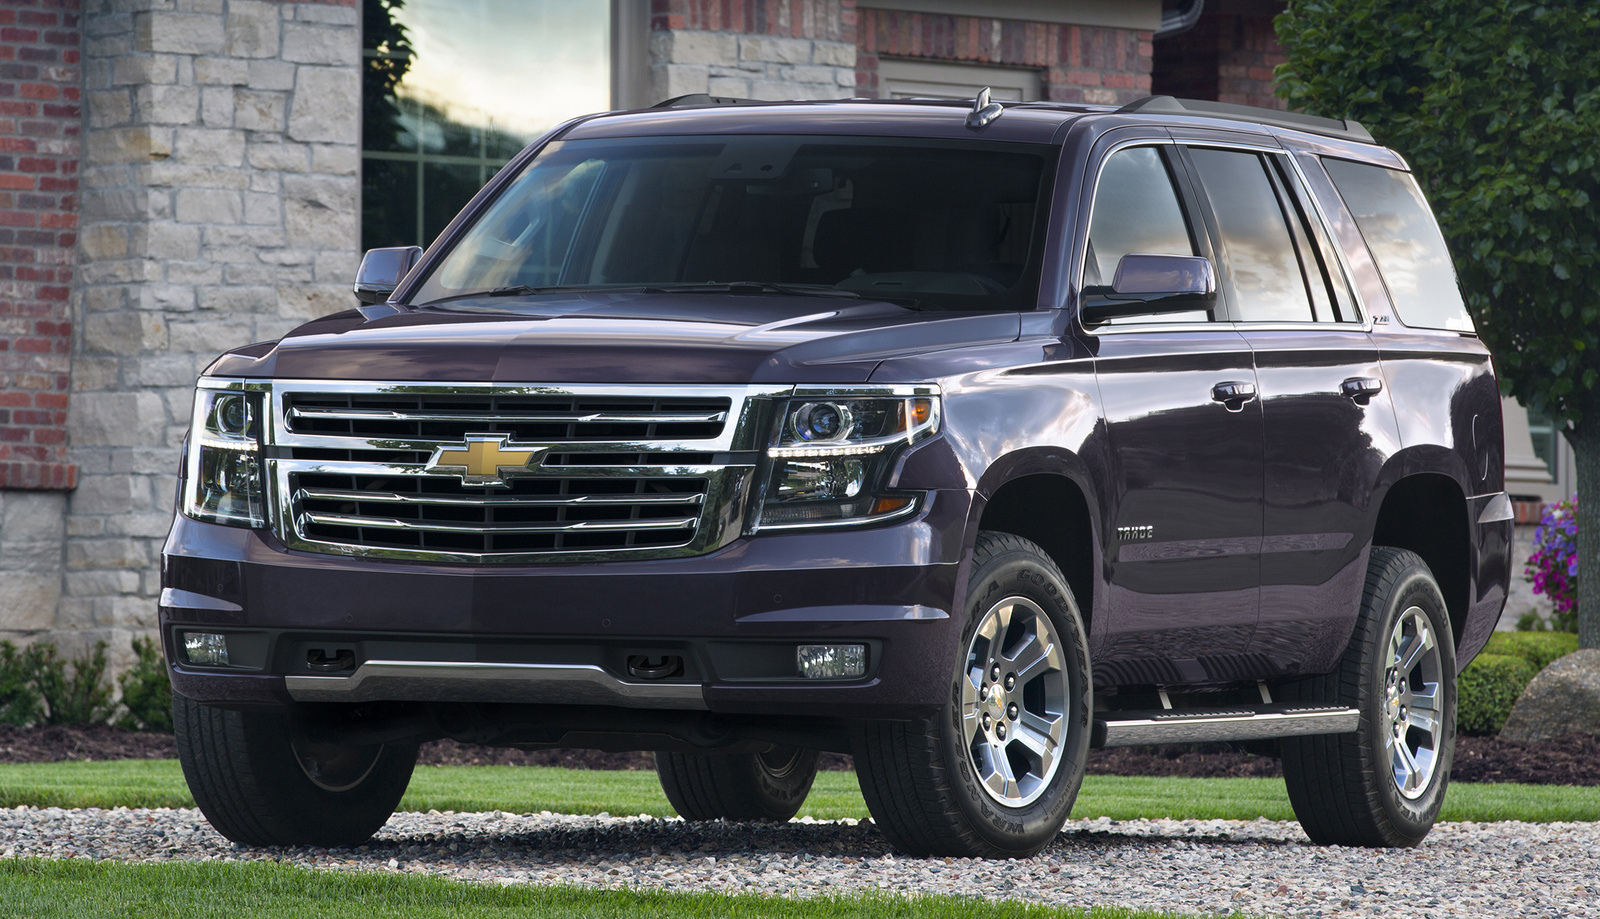 2016 chevrolet tahoe overview cargurus. Black Bedroom Furniture Sets. Home Design Ideas